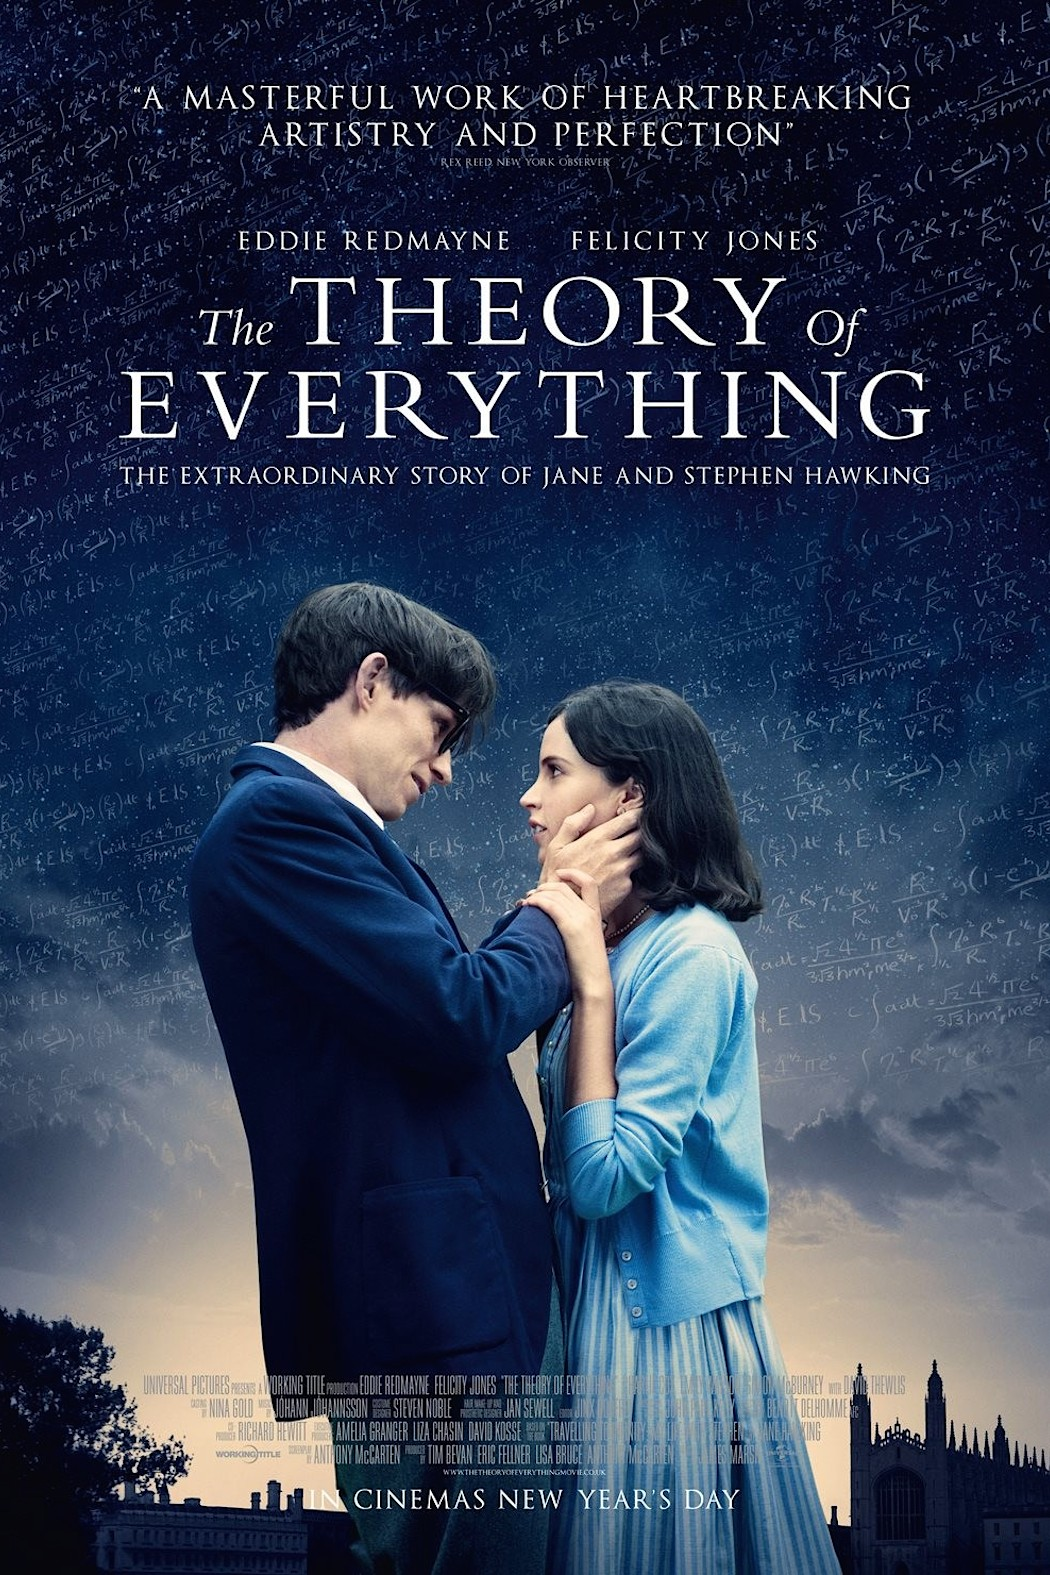 The Theory of Everything #film 5 www.impawards.com